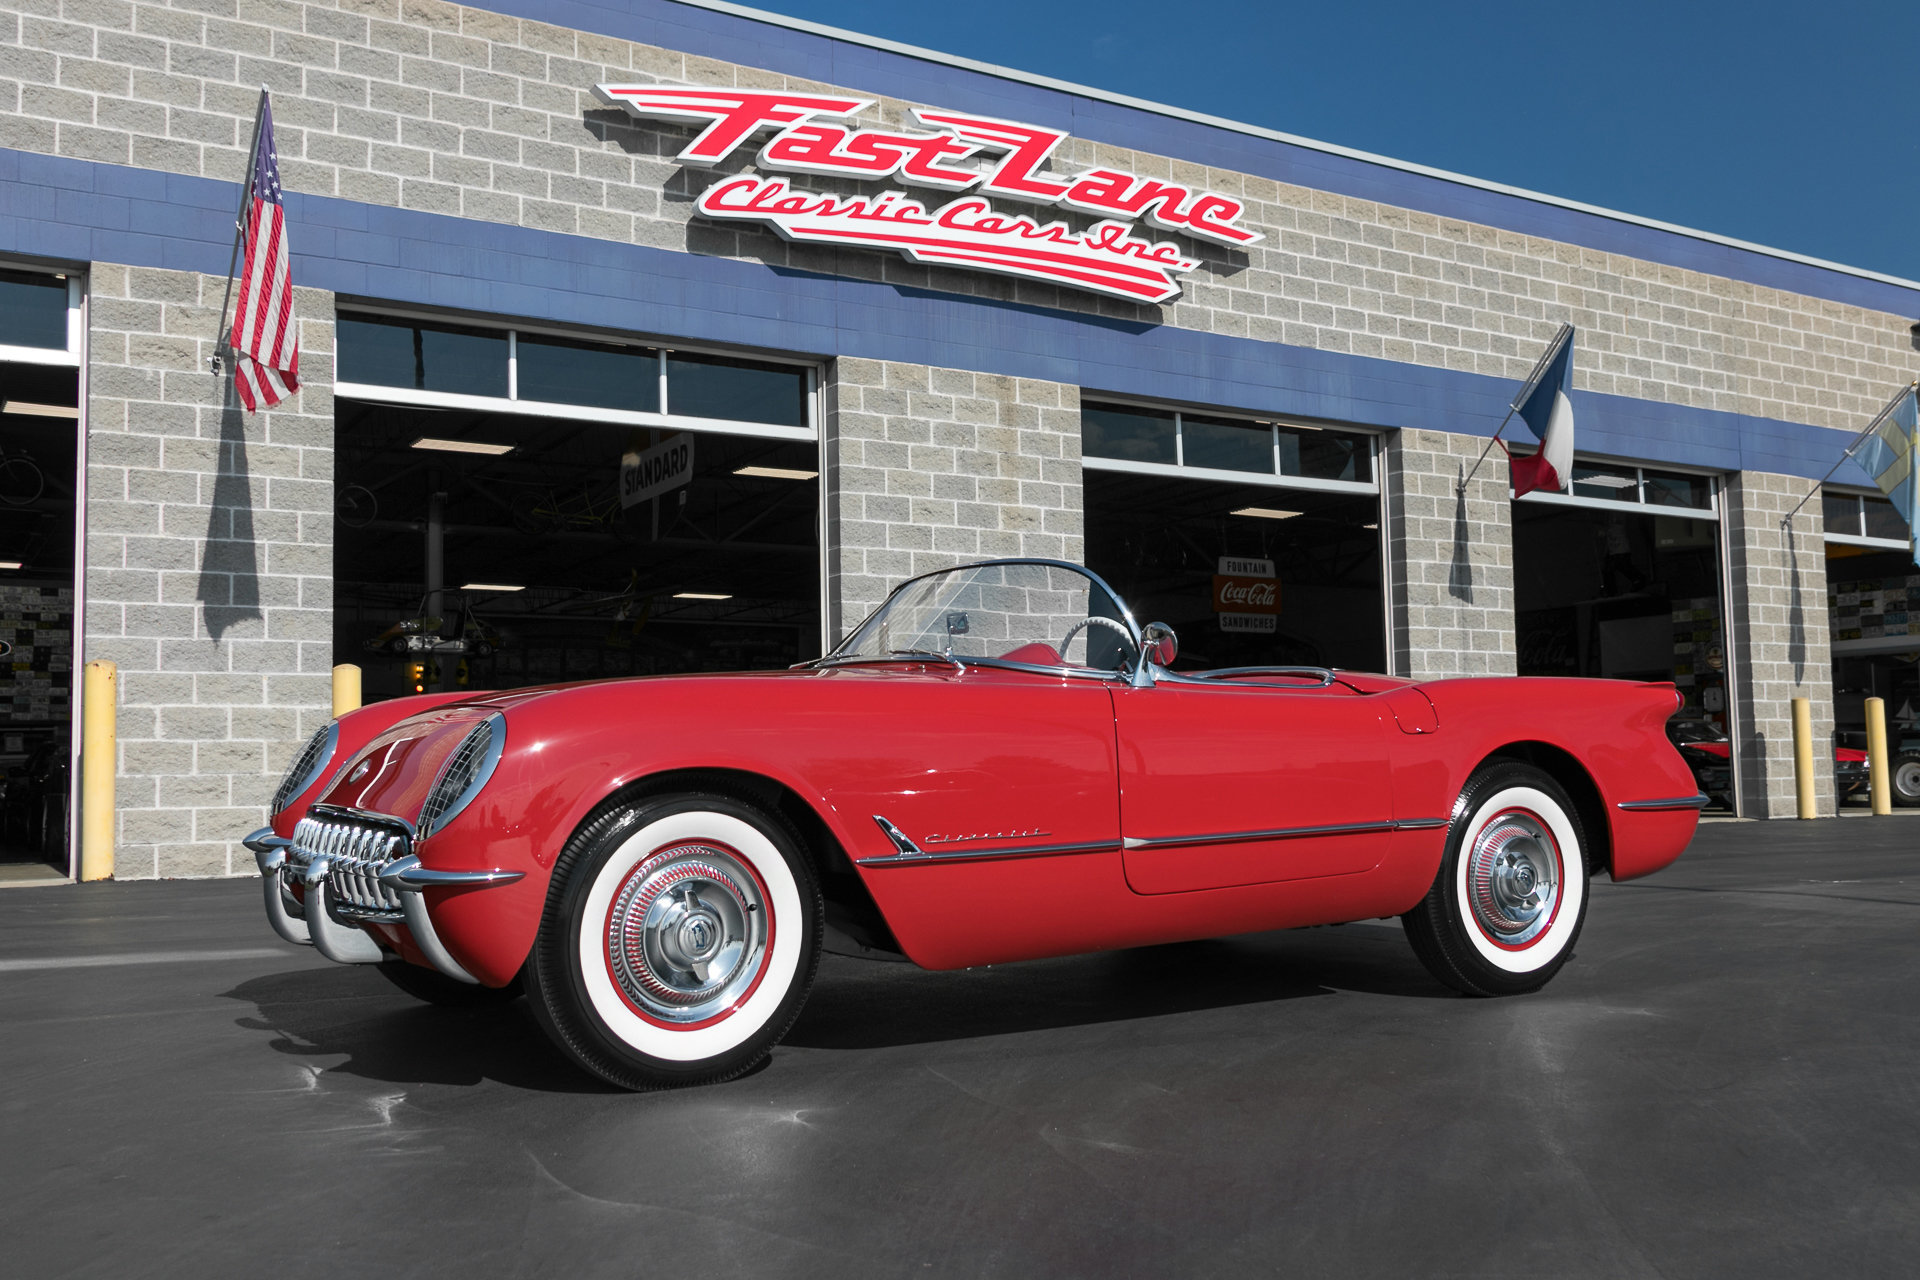 638787bec83f7 hd 1954 chevrolet corvette